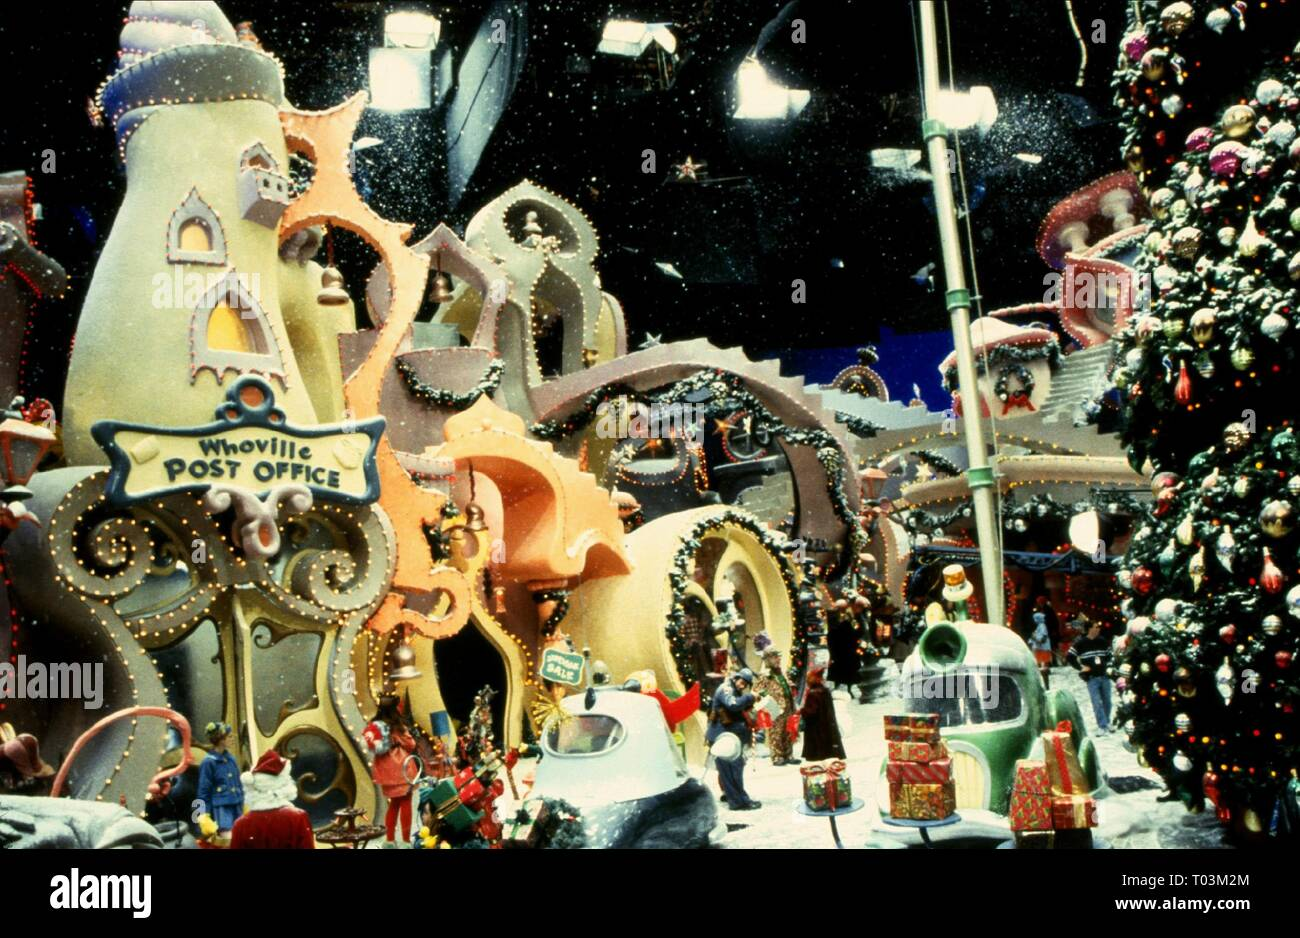 WHOVILLE SCENE, HOW THE GRINCH STOLE CHRISTMAS, 2000 - Stock Image